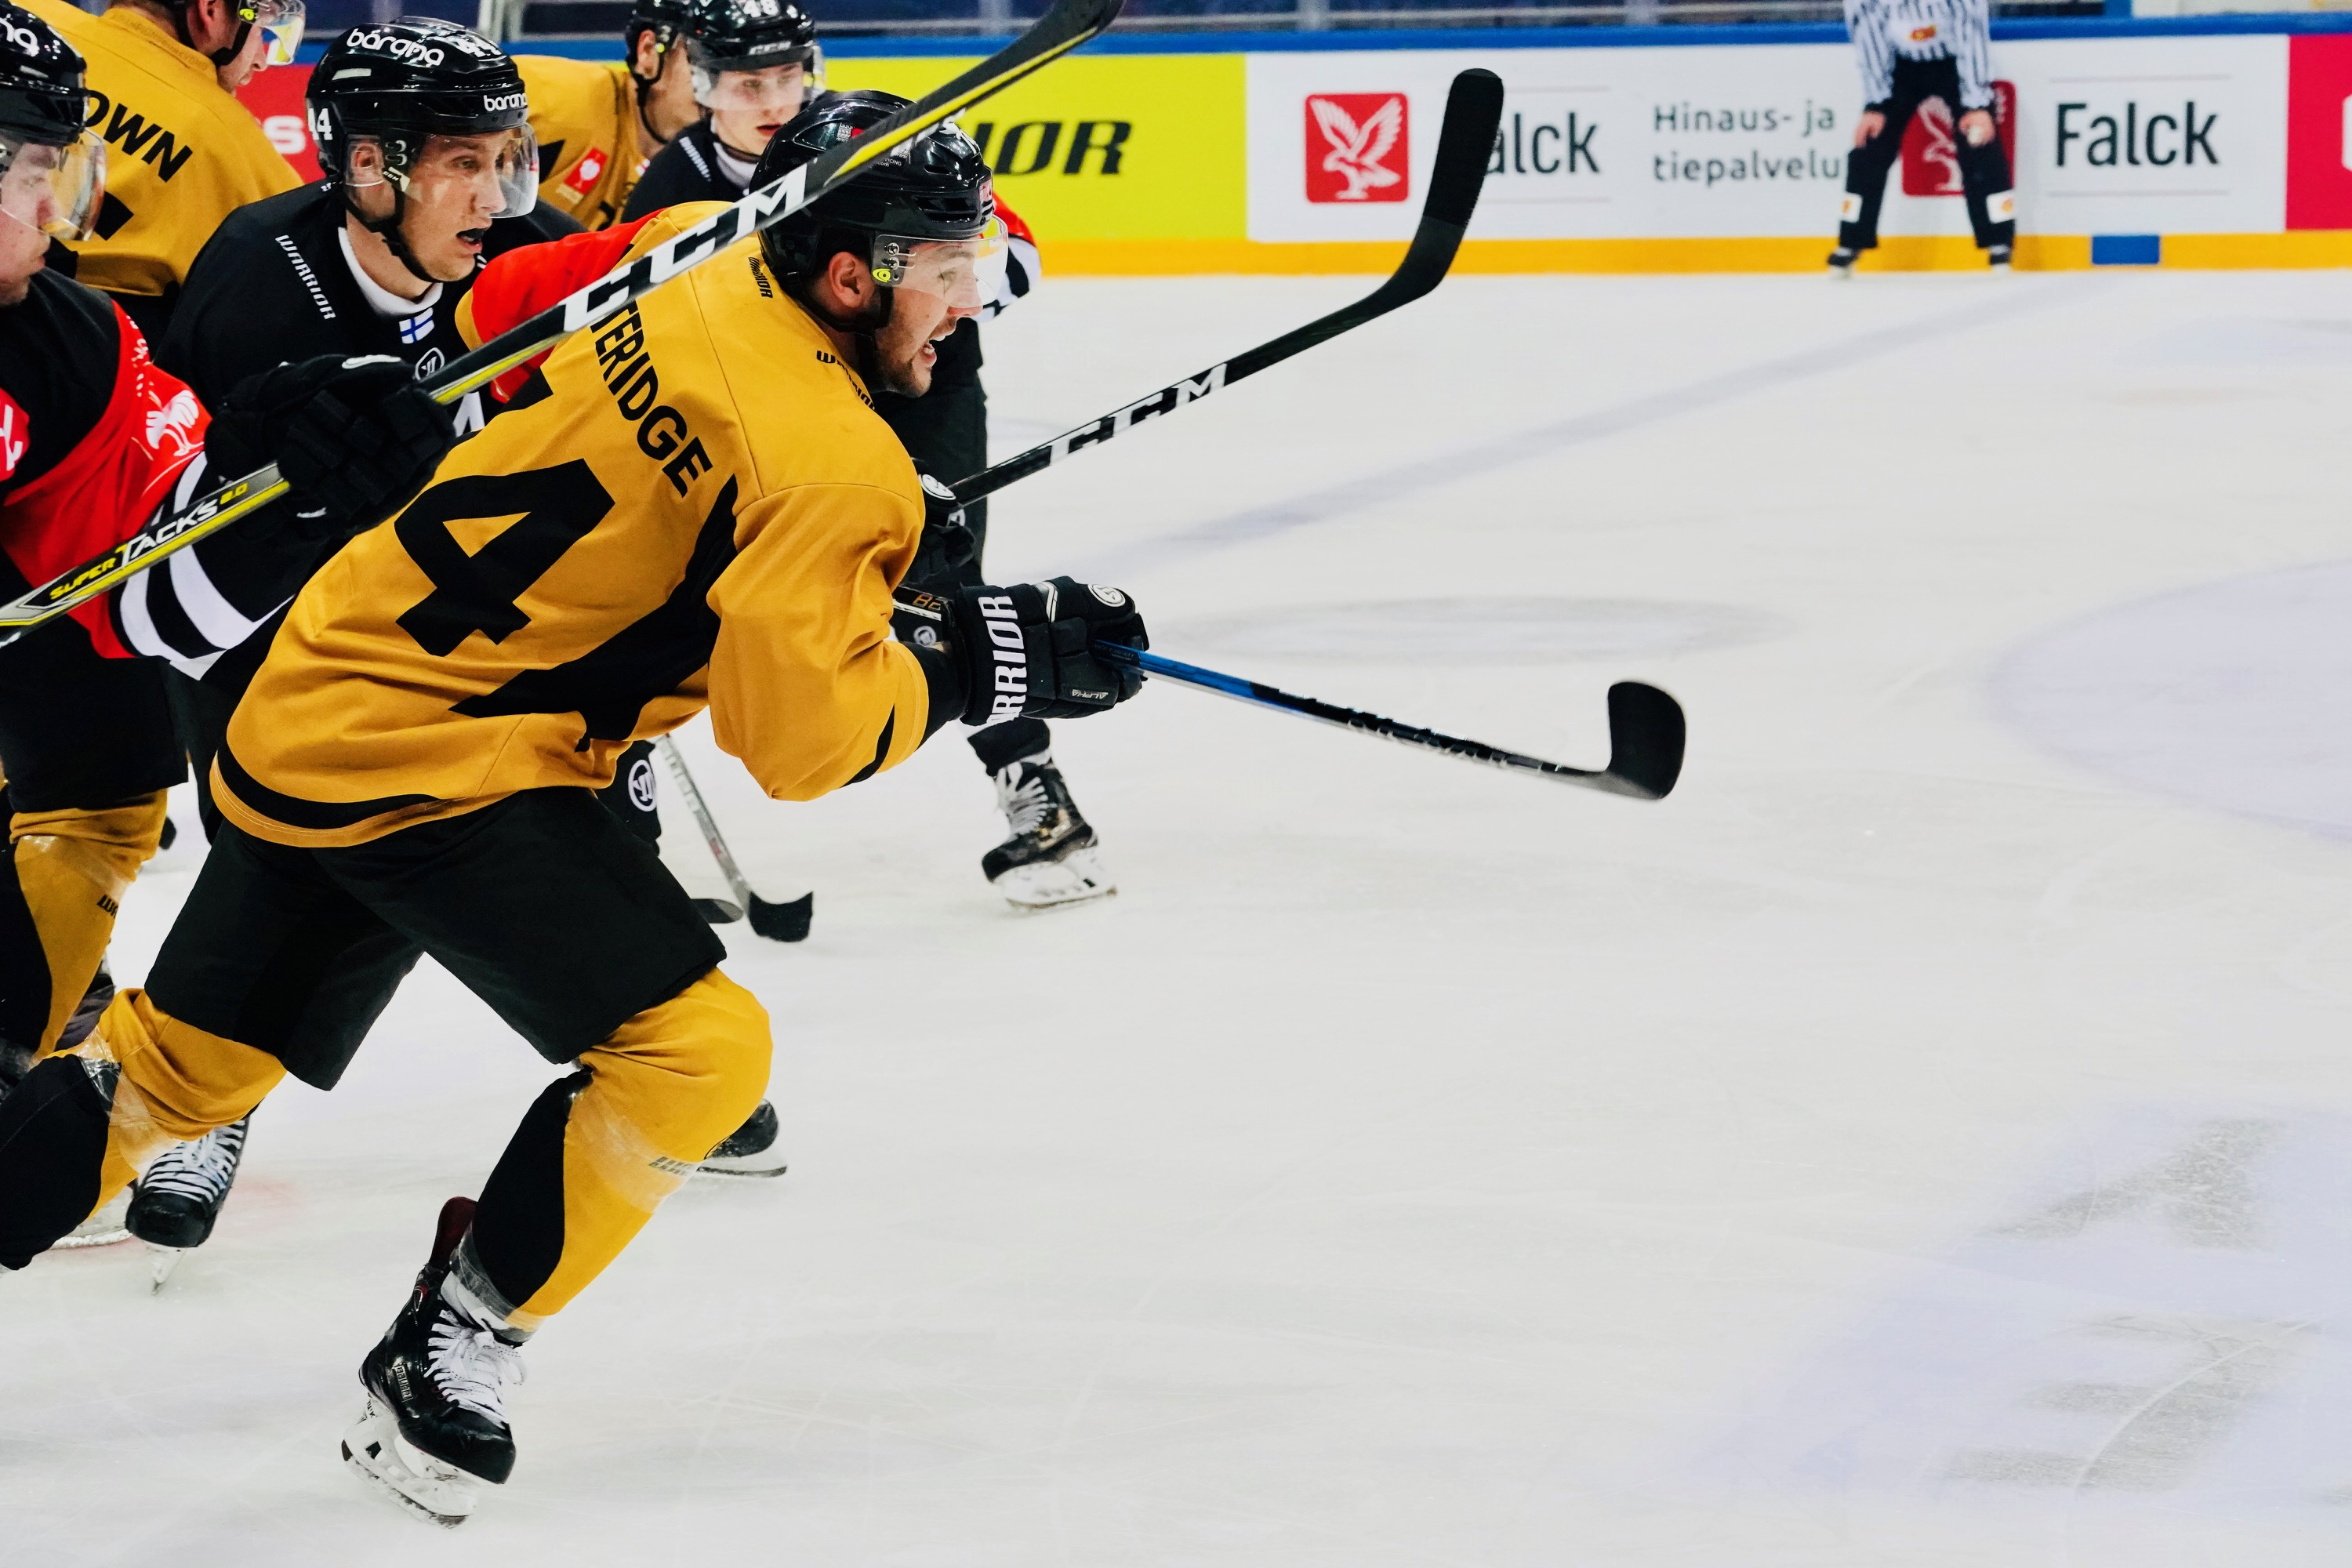 Photo Special: Panthers visit Finland Top Image